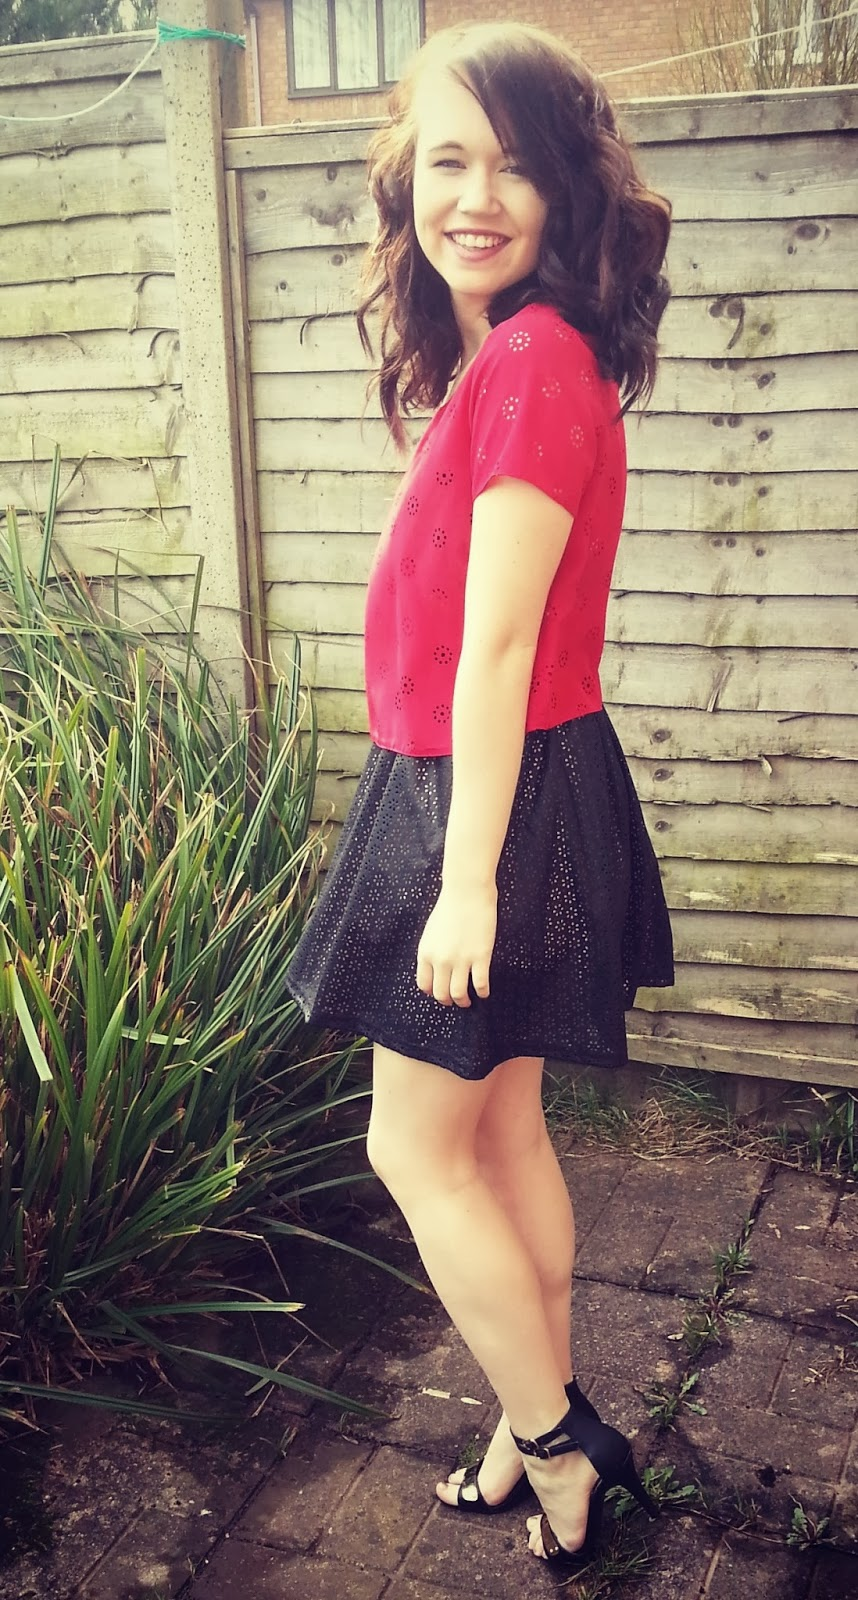 primark red top and skirt